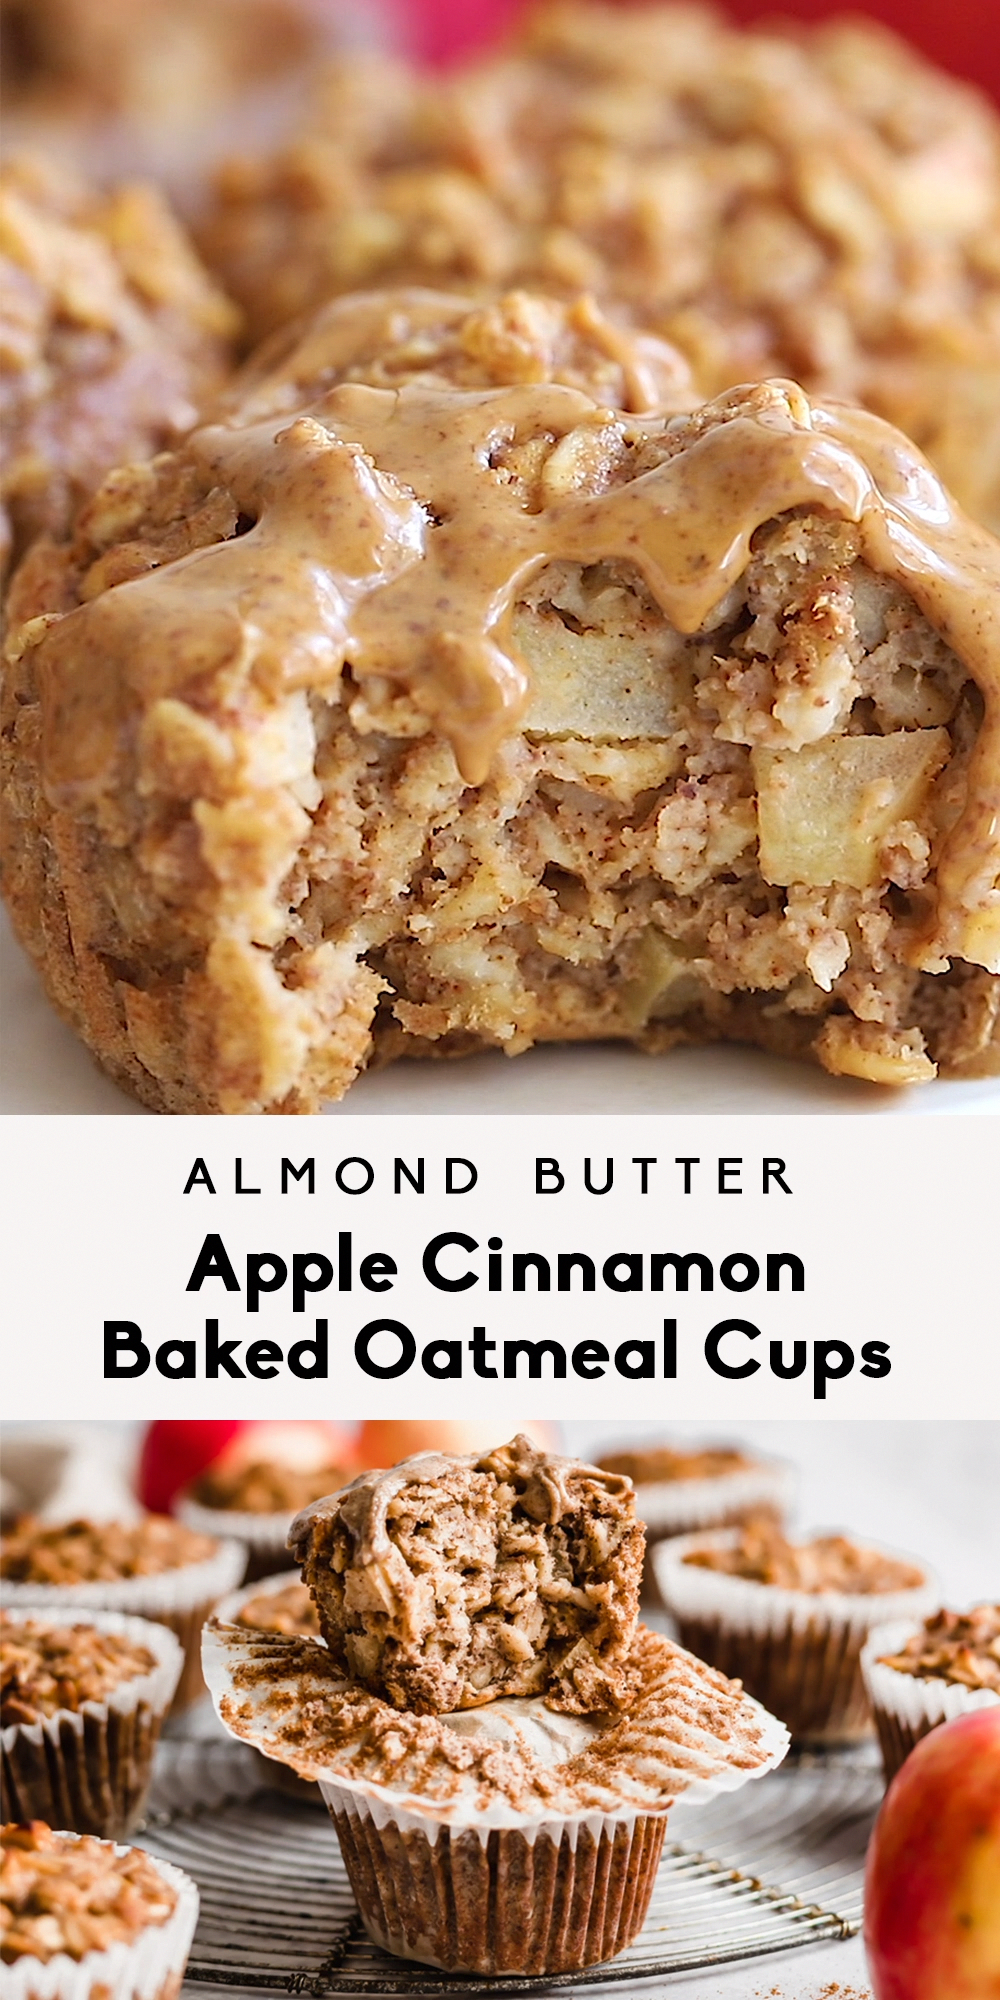 Almond Butter Apple Cinnamon Baked Oatmeal Cups |